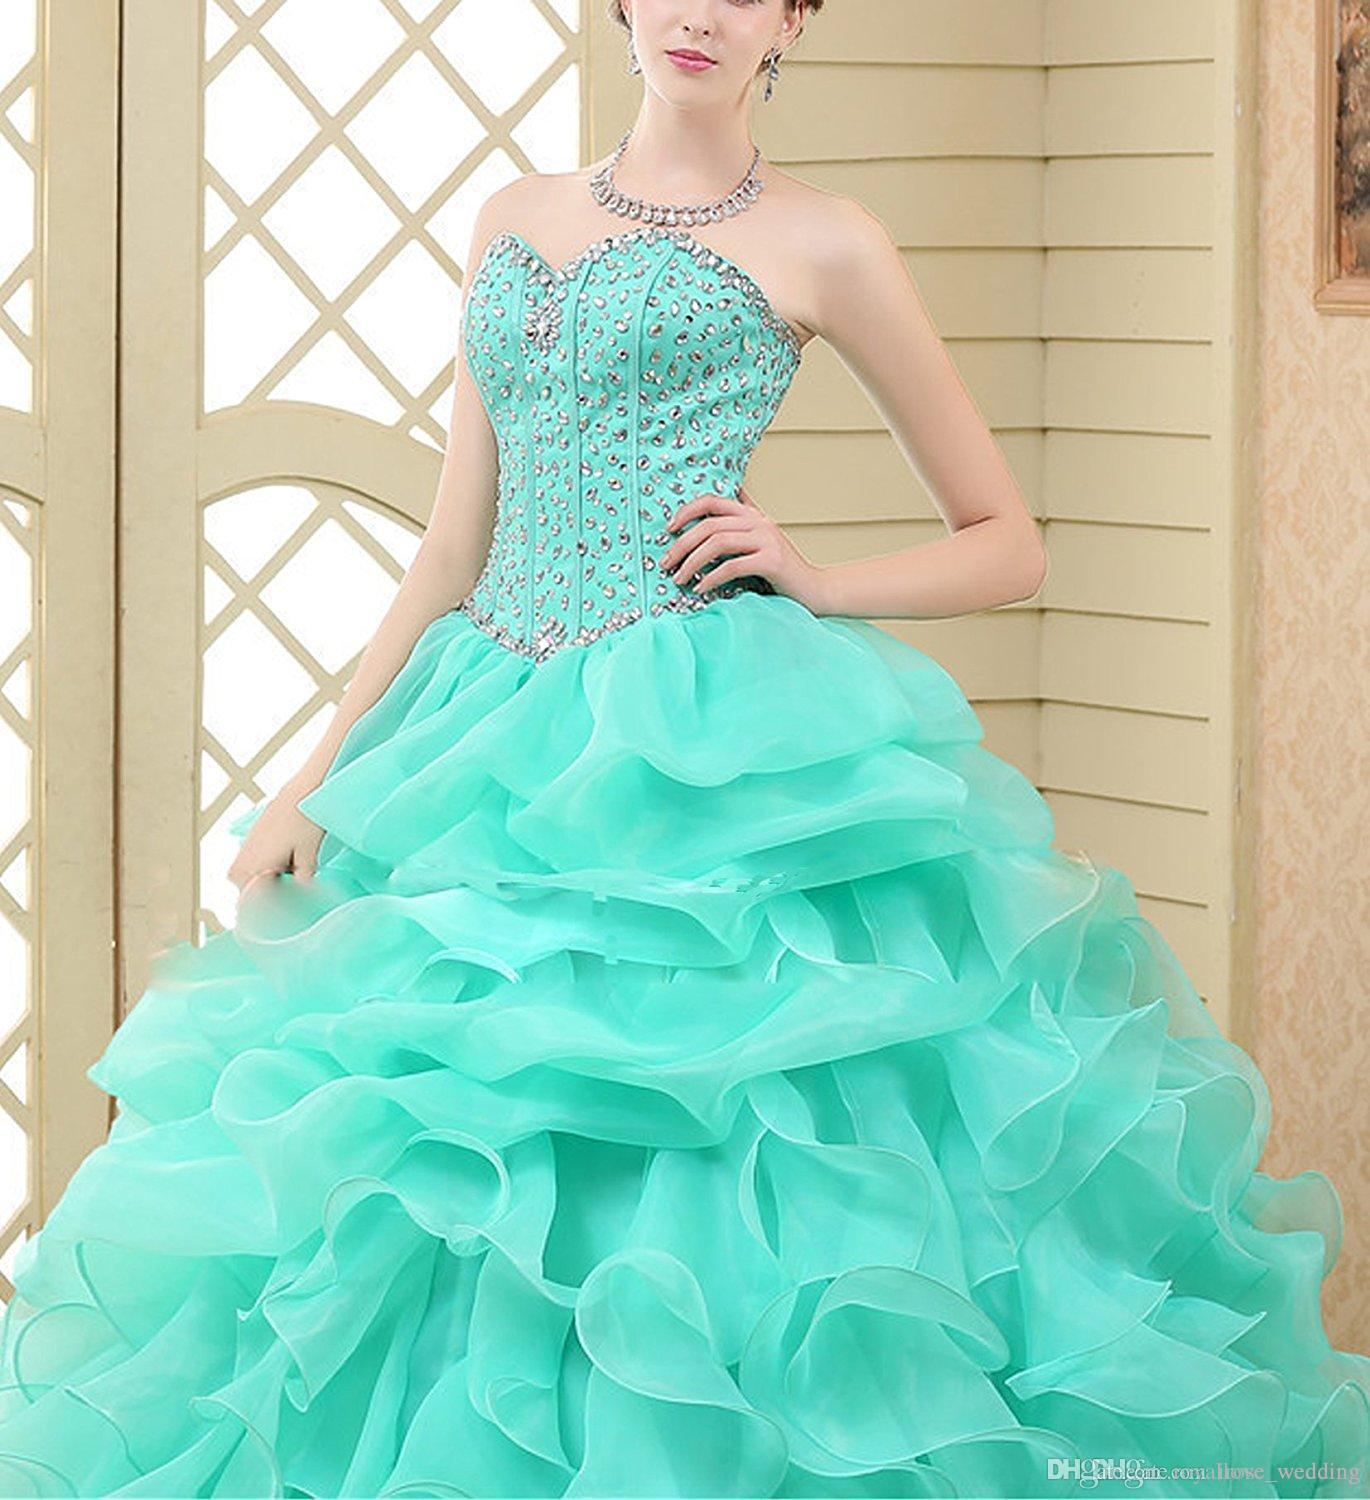 748b5da6b2e 2017 Elegant Mint Ball Gown Quinceanera Dresses Sweetheart Beaded Lace Up  Ruffles Floor Length Organza Girls Sweet 16 Dress Party Gowns Dresses Of  2015 ...